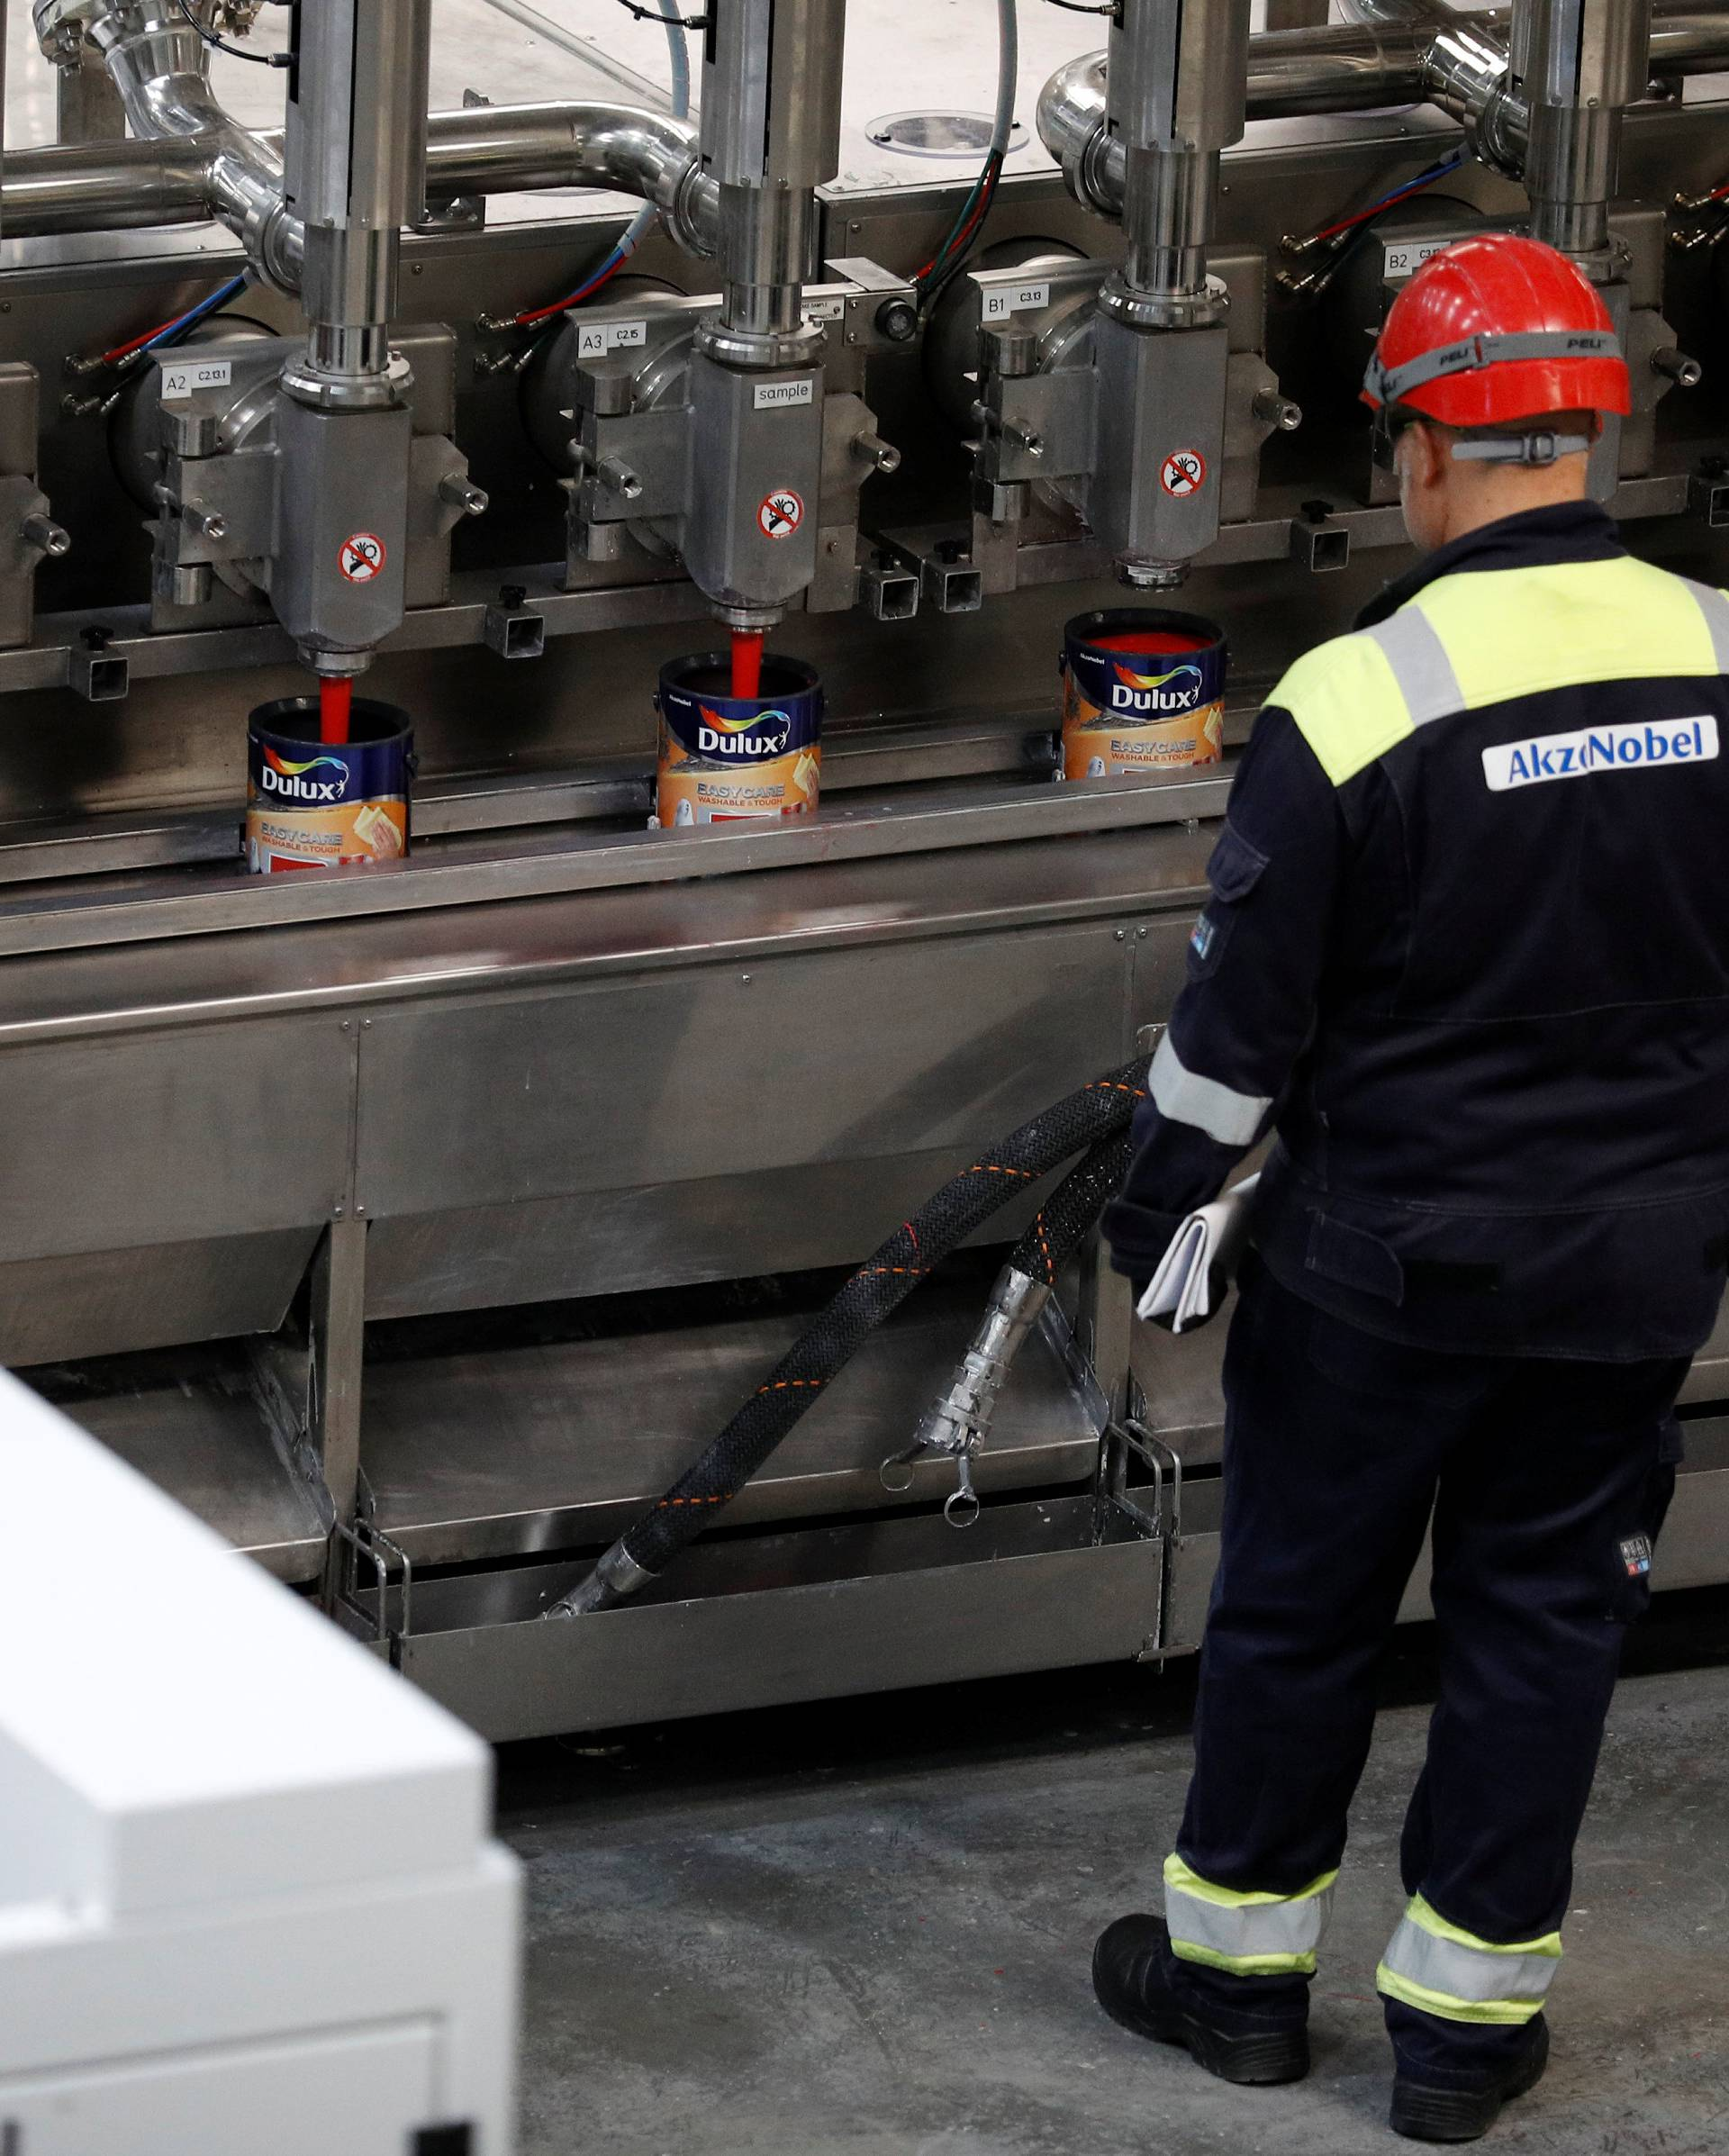 Workers look on as Dulux paint cans are filled on the production line inside AkzoNobel's new paint factory in Ashington, Britain